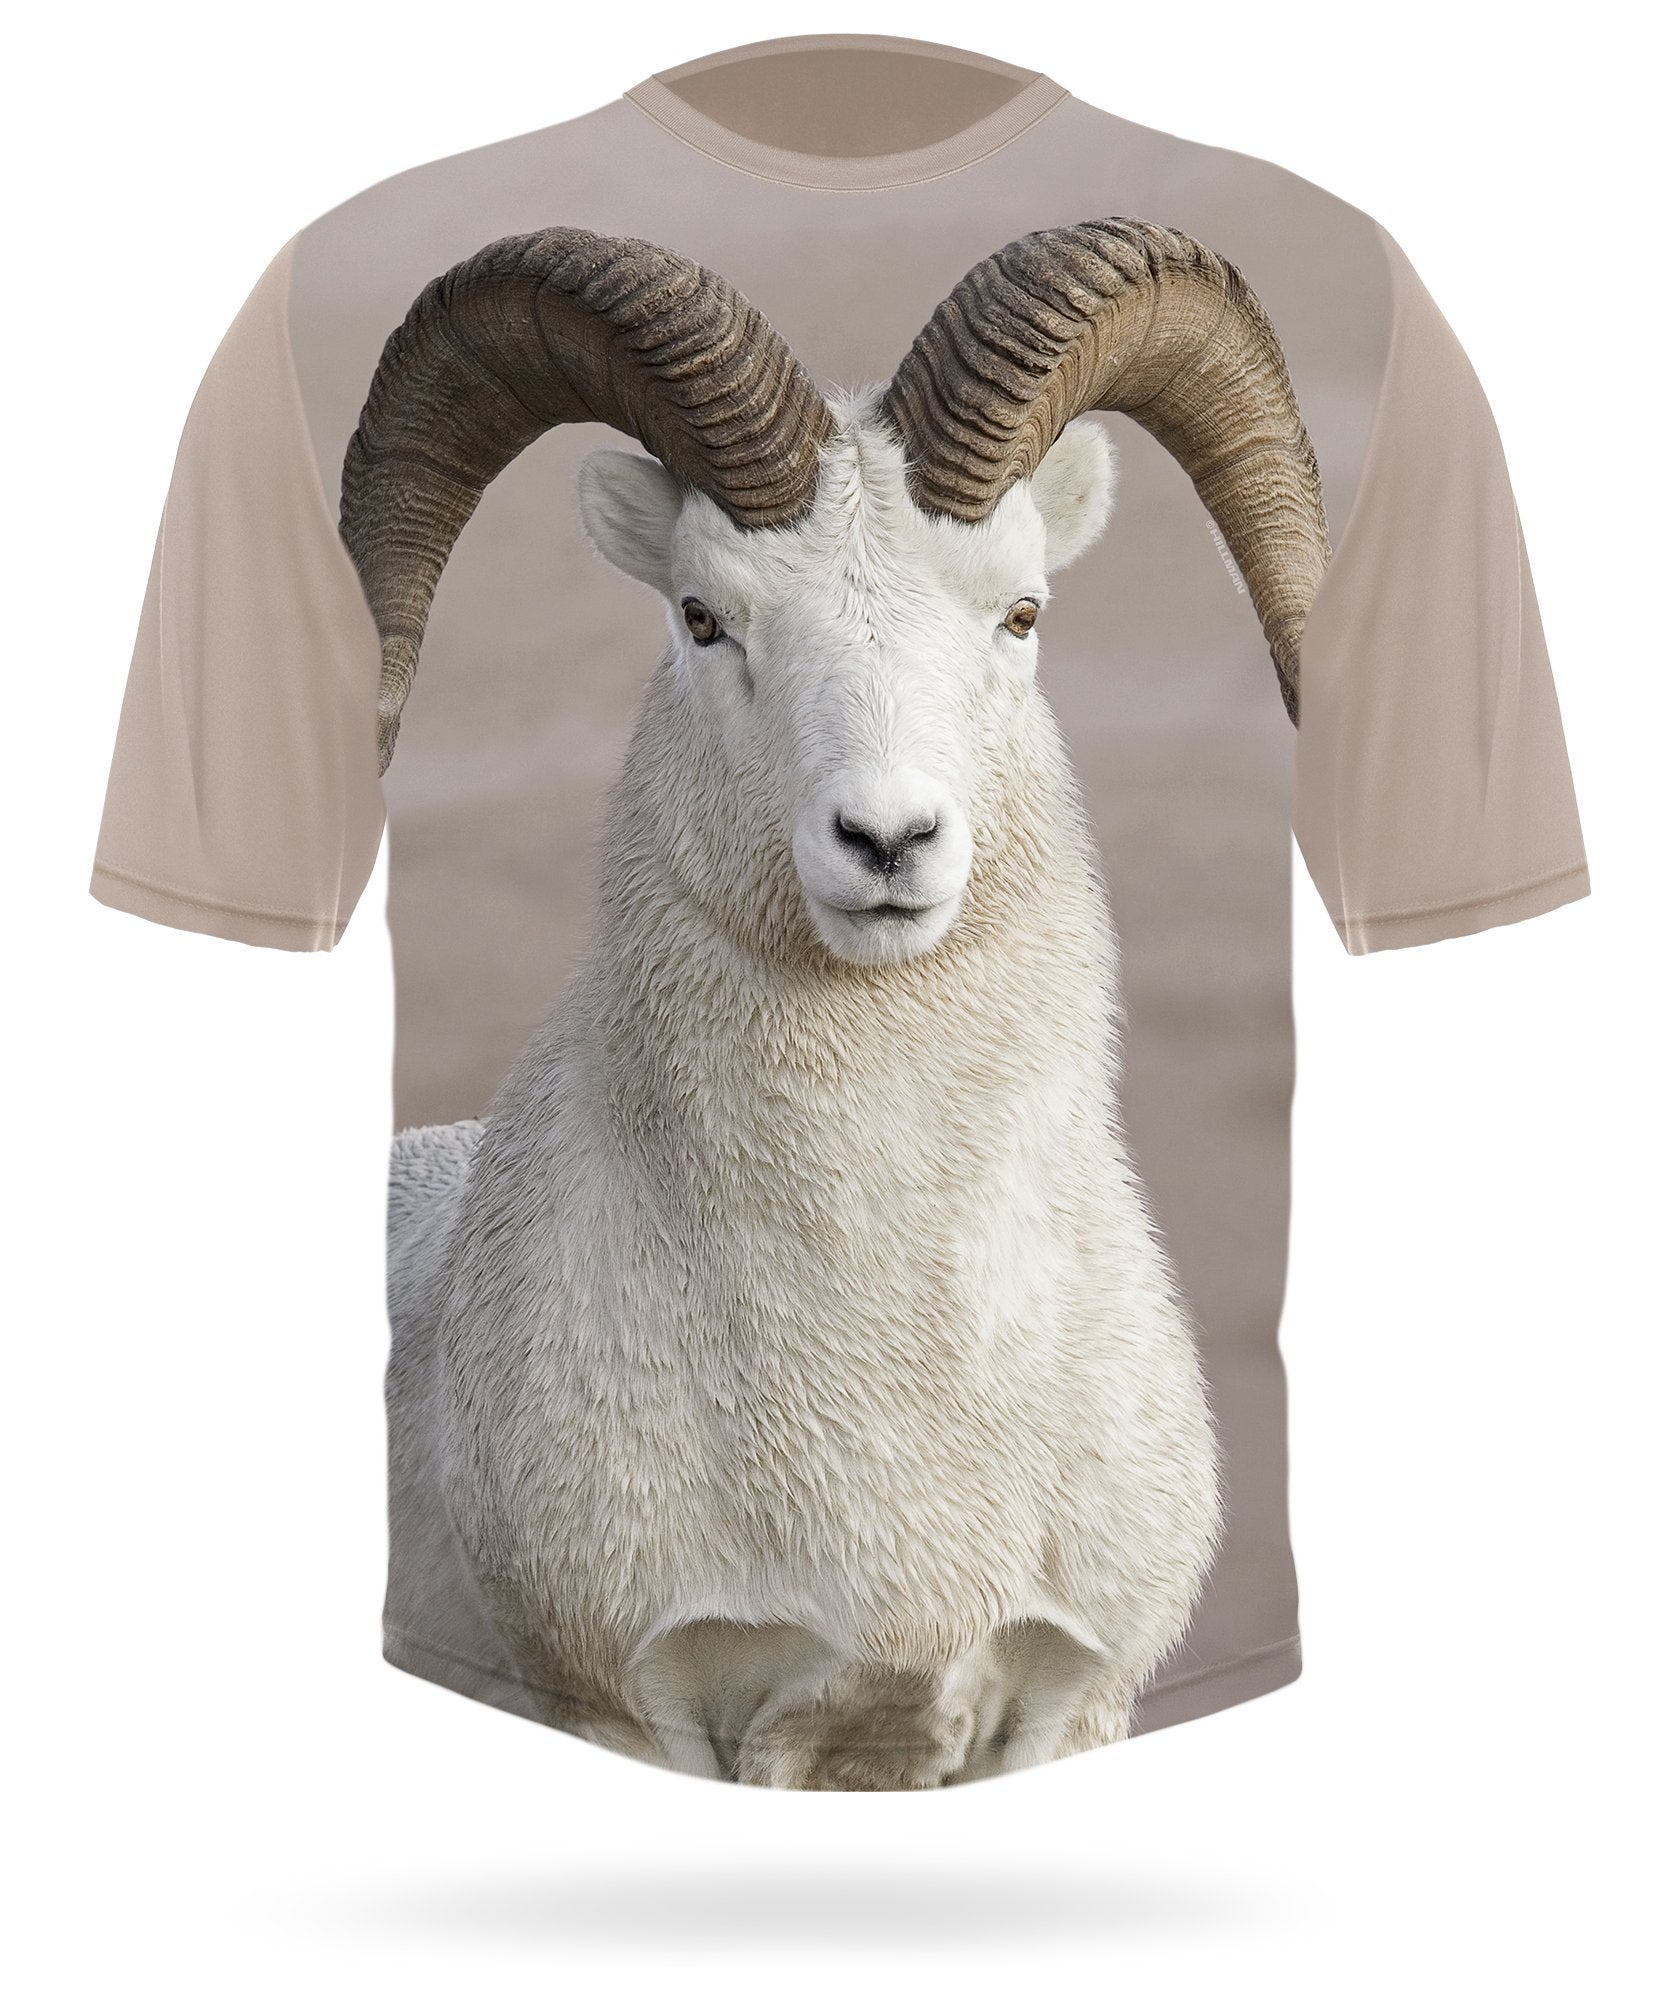 Dall Sheep T-Shirt - Short Sleeve